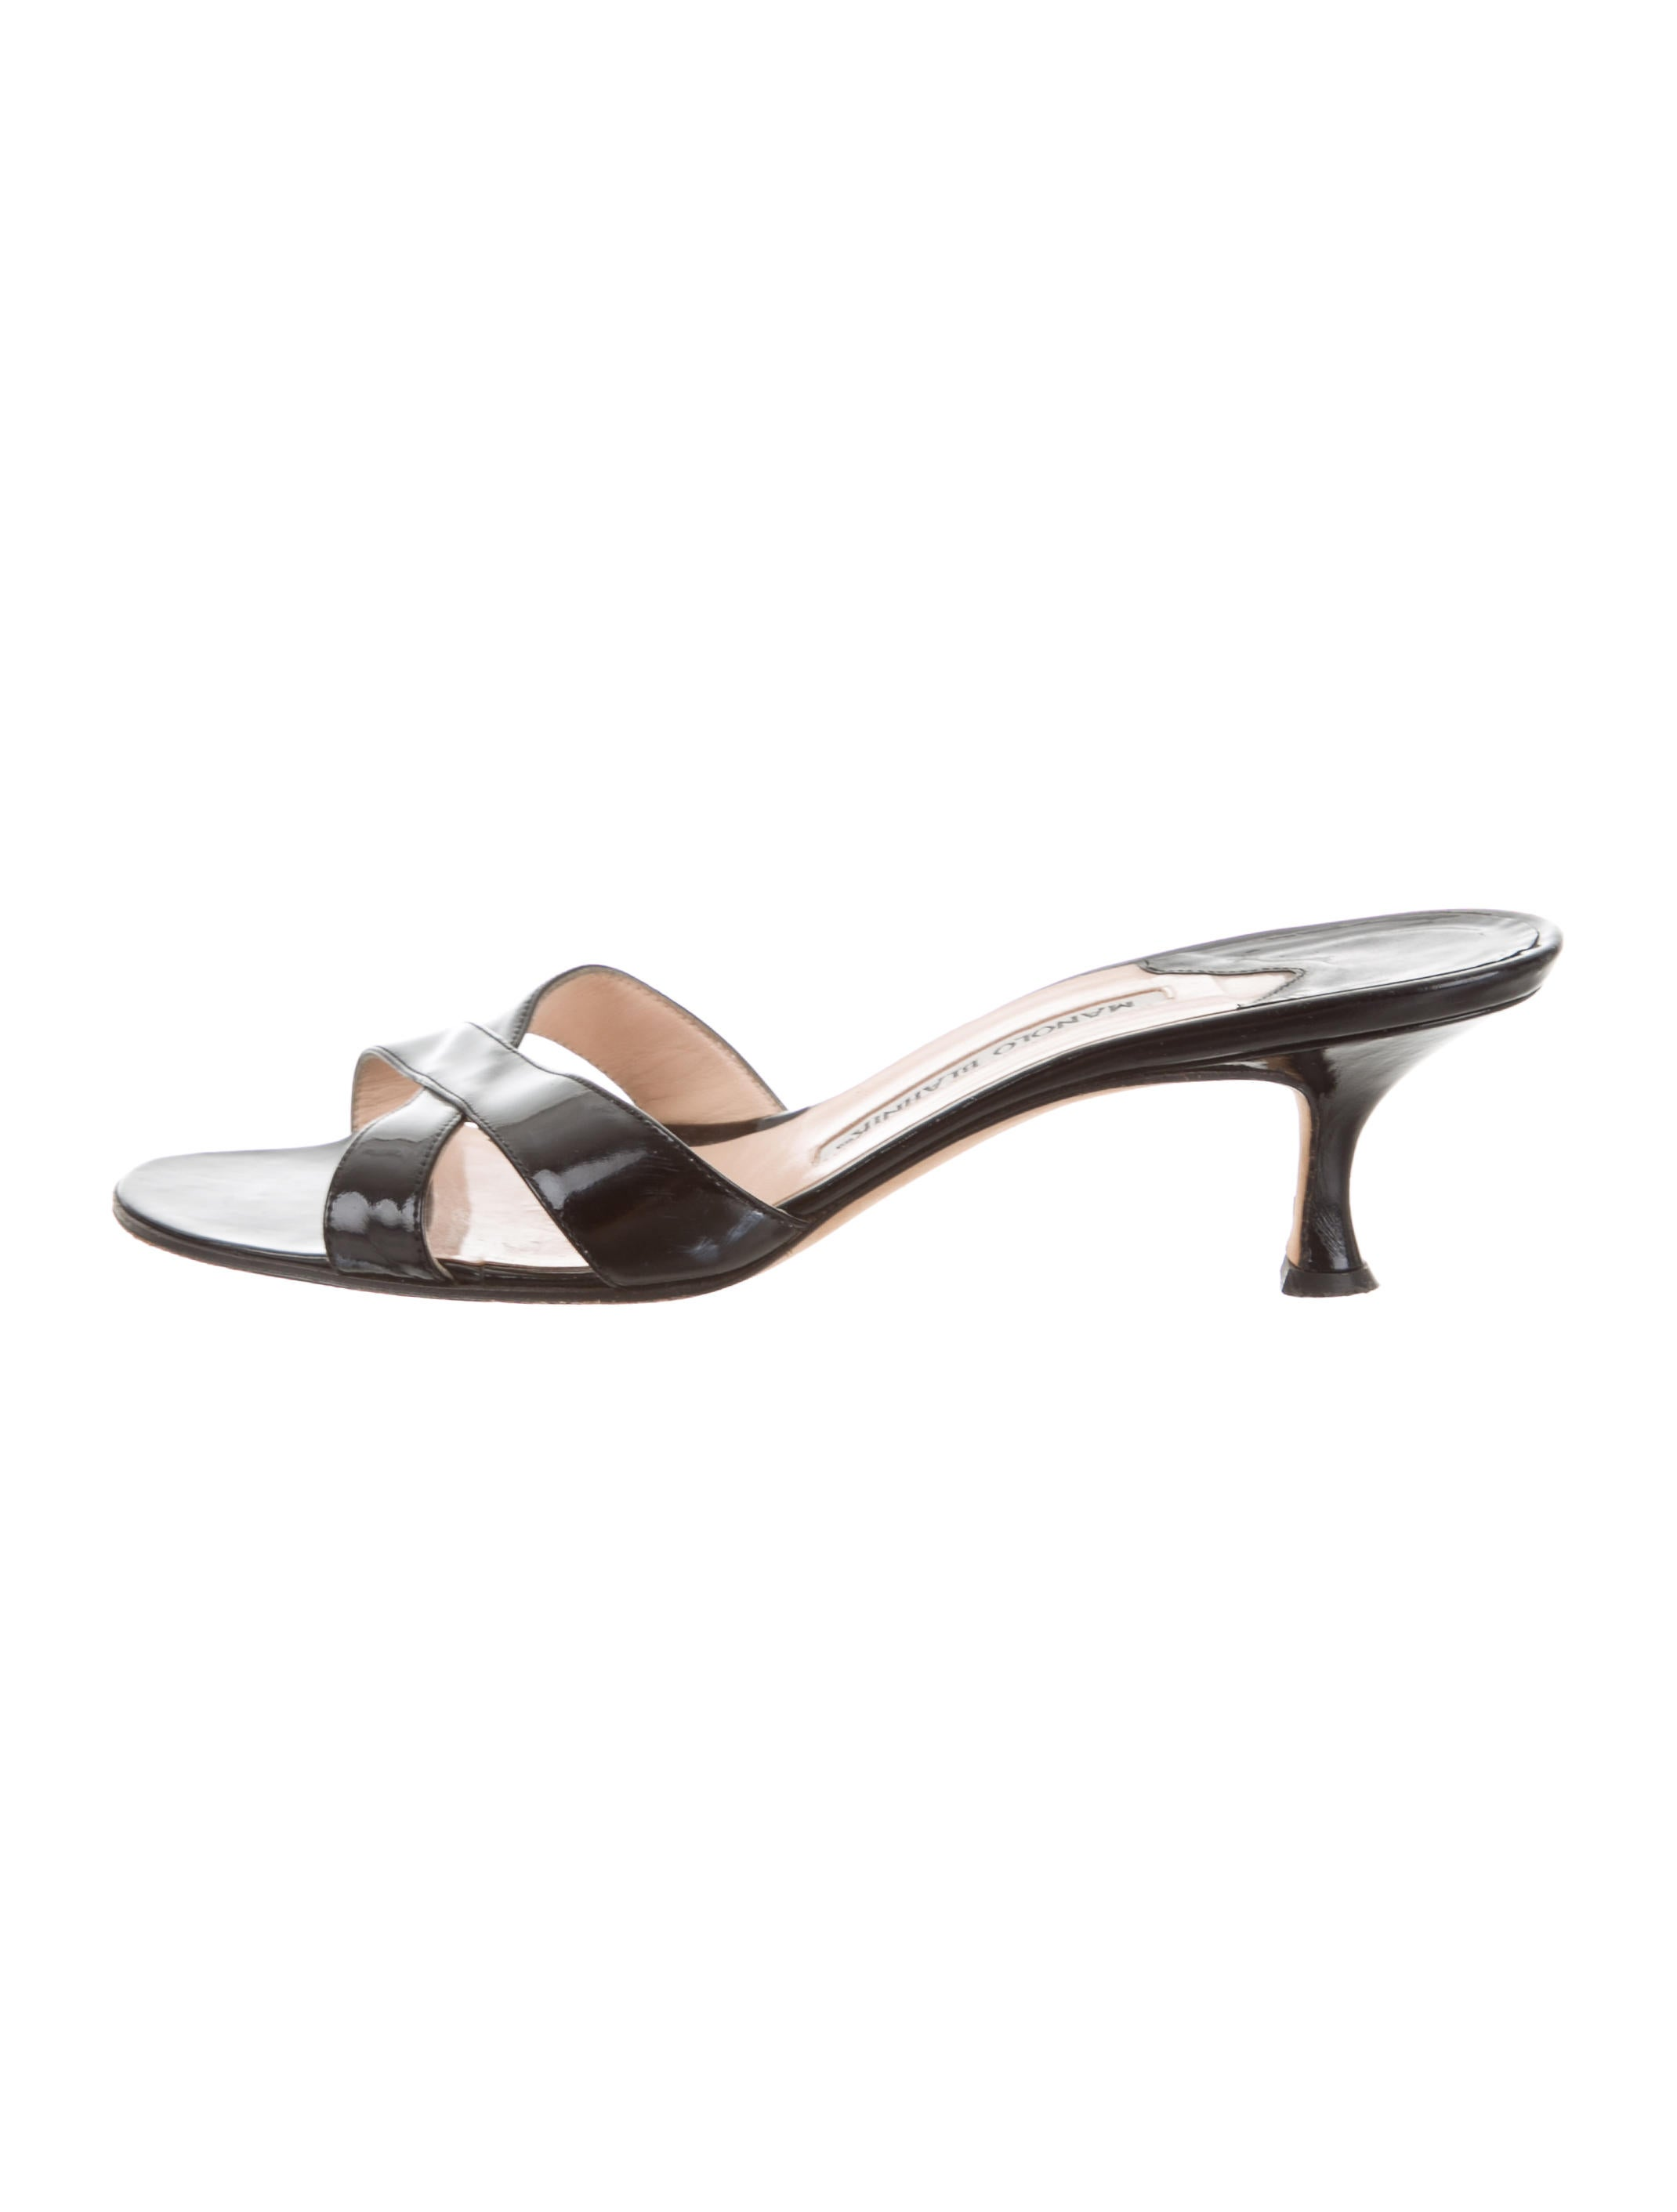 Manolo Blahnik Crossover Slide Sandals free shipping discounts sast sale online discount low shipping affordable cheap online oLUaFqa